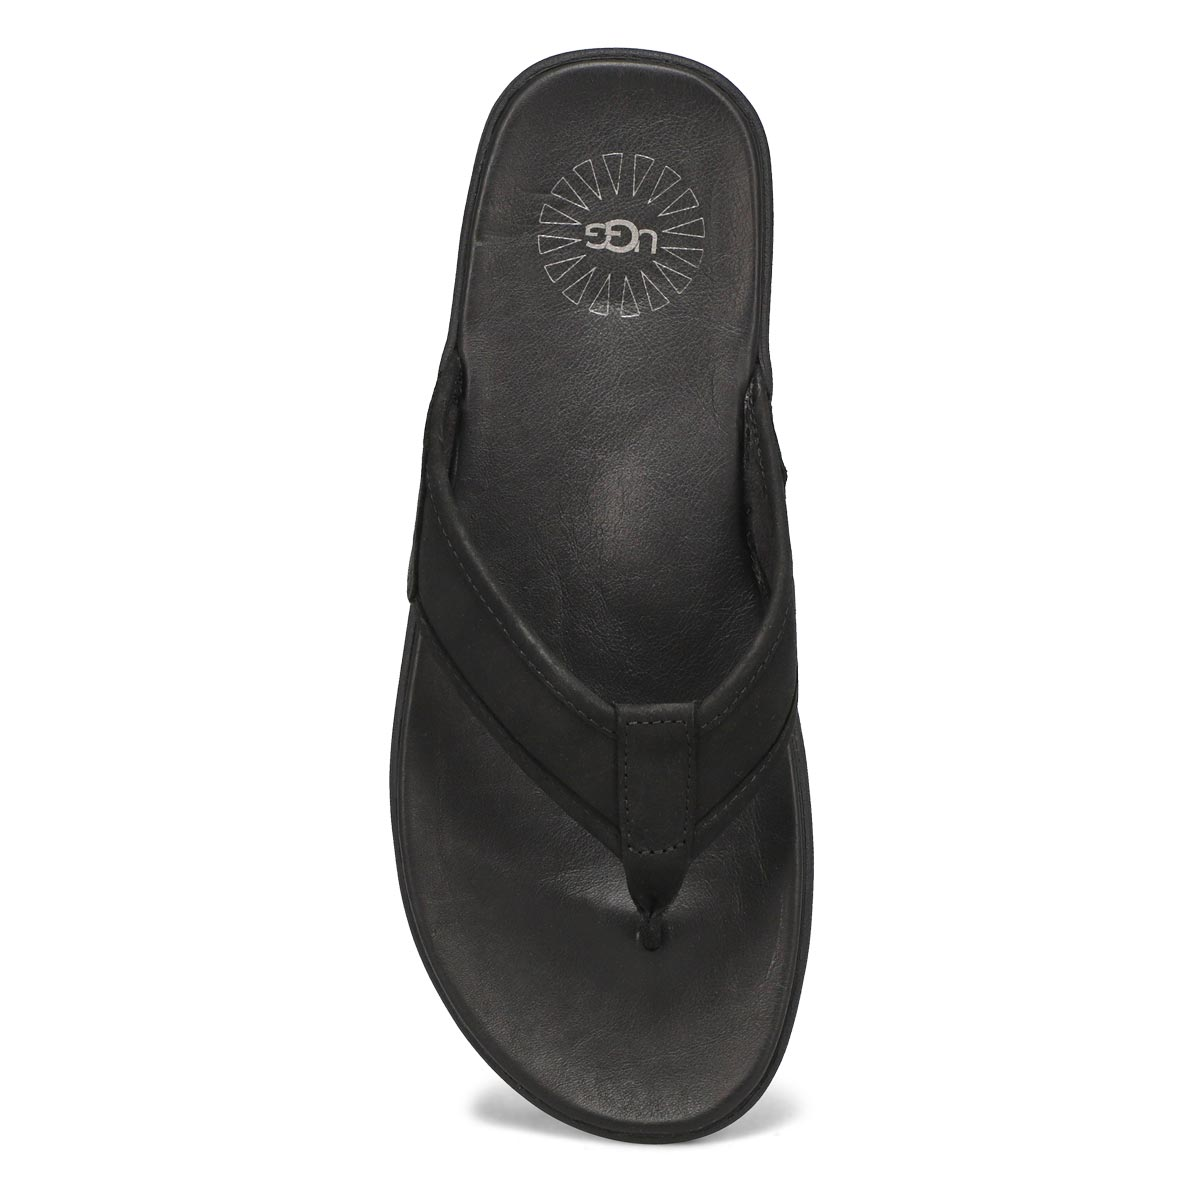 Mns Seaside Flip black thong sandal